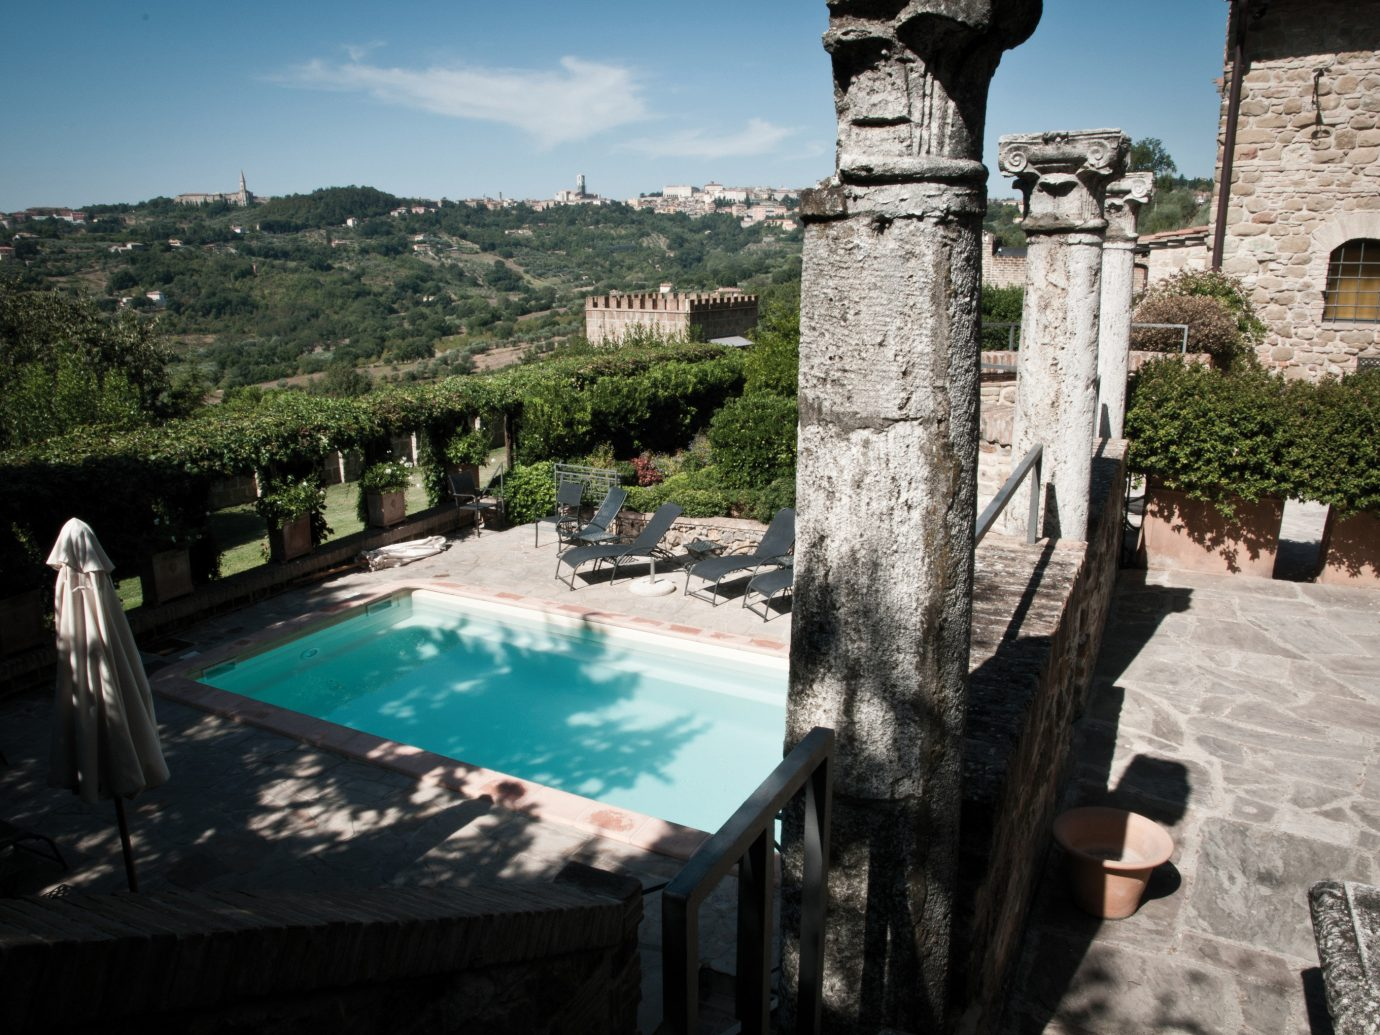 europe Hotels Italy Romance sky water swimming pool tourism historic site Villa estate tree archaeological site travel building hacienda ancient history